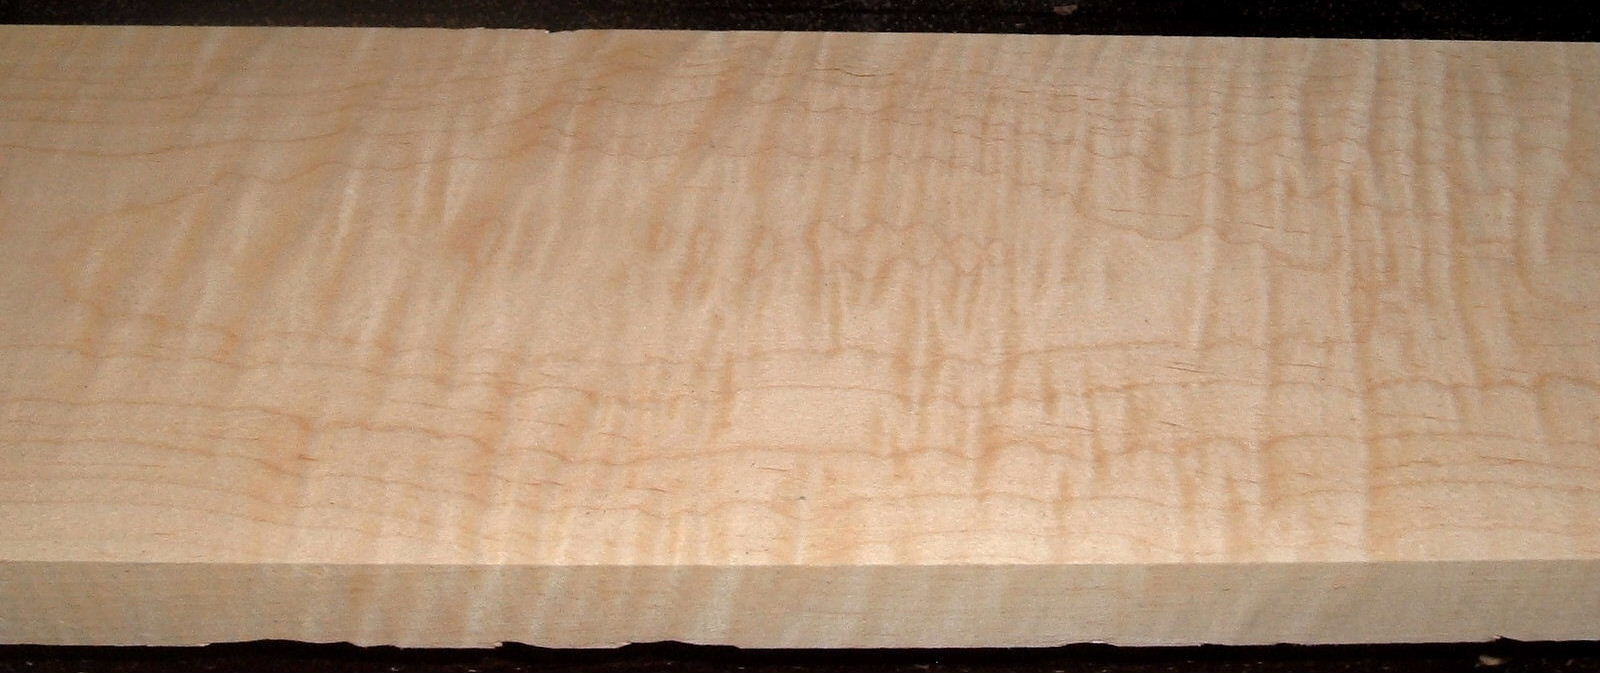 M2102-121, 1-1/8x6-1/2x47, Curly Tiger Maple